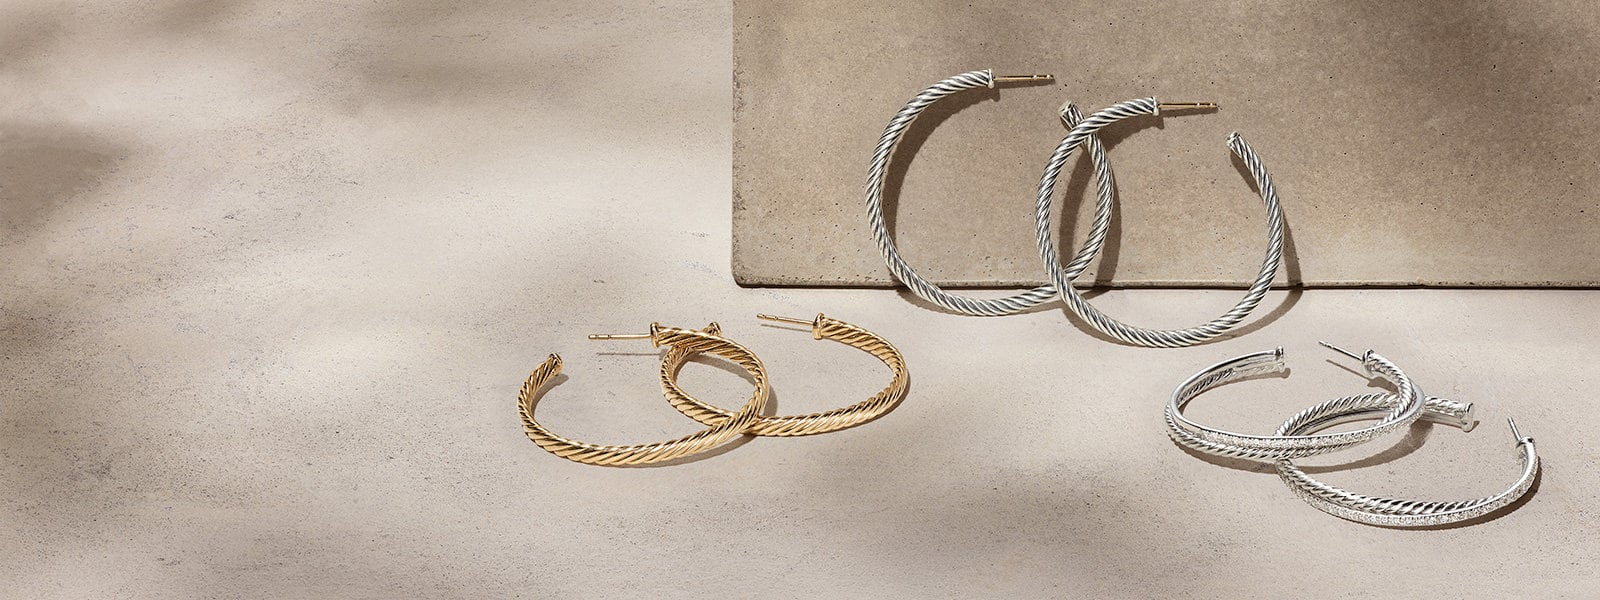 Three pairs of David Yurman Cable Classics Collection® hoop earrings in 18K yellow gold or sterling silver scattered on a light pink textured stone with long shadows.